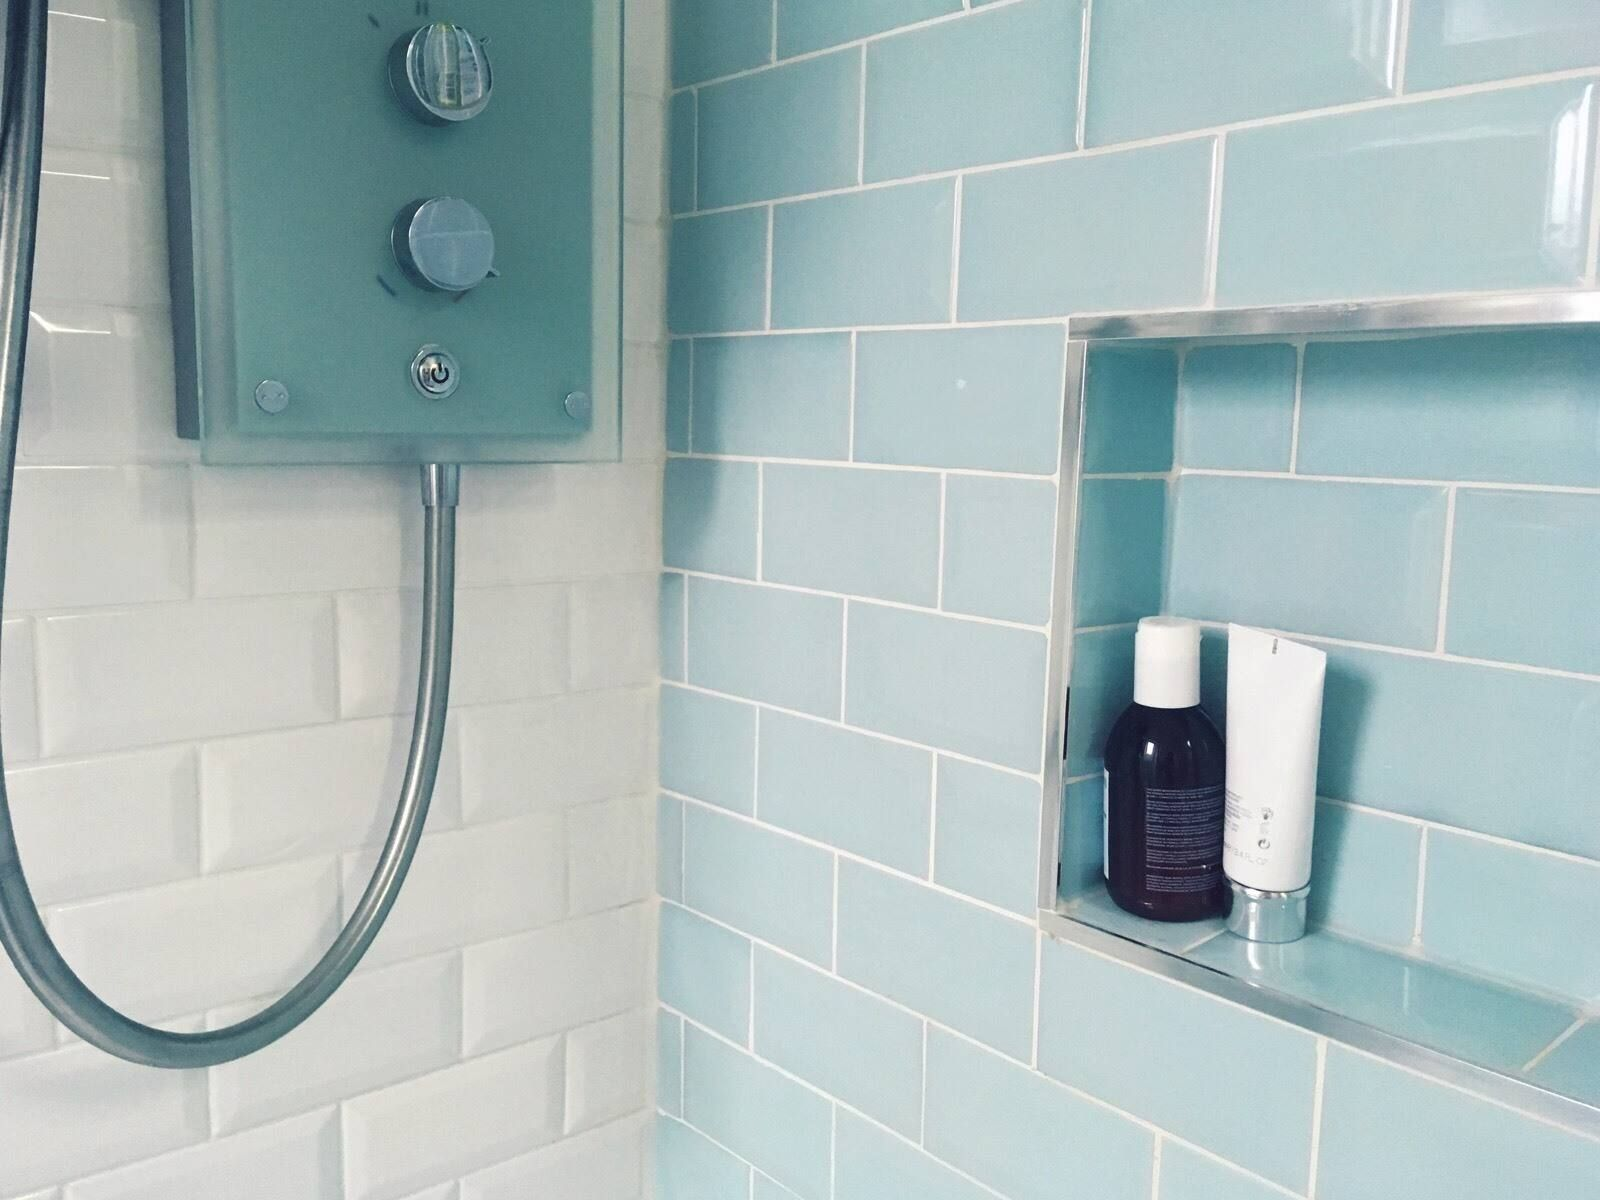 shower at bathroom with blue and white tiles